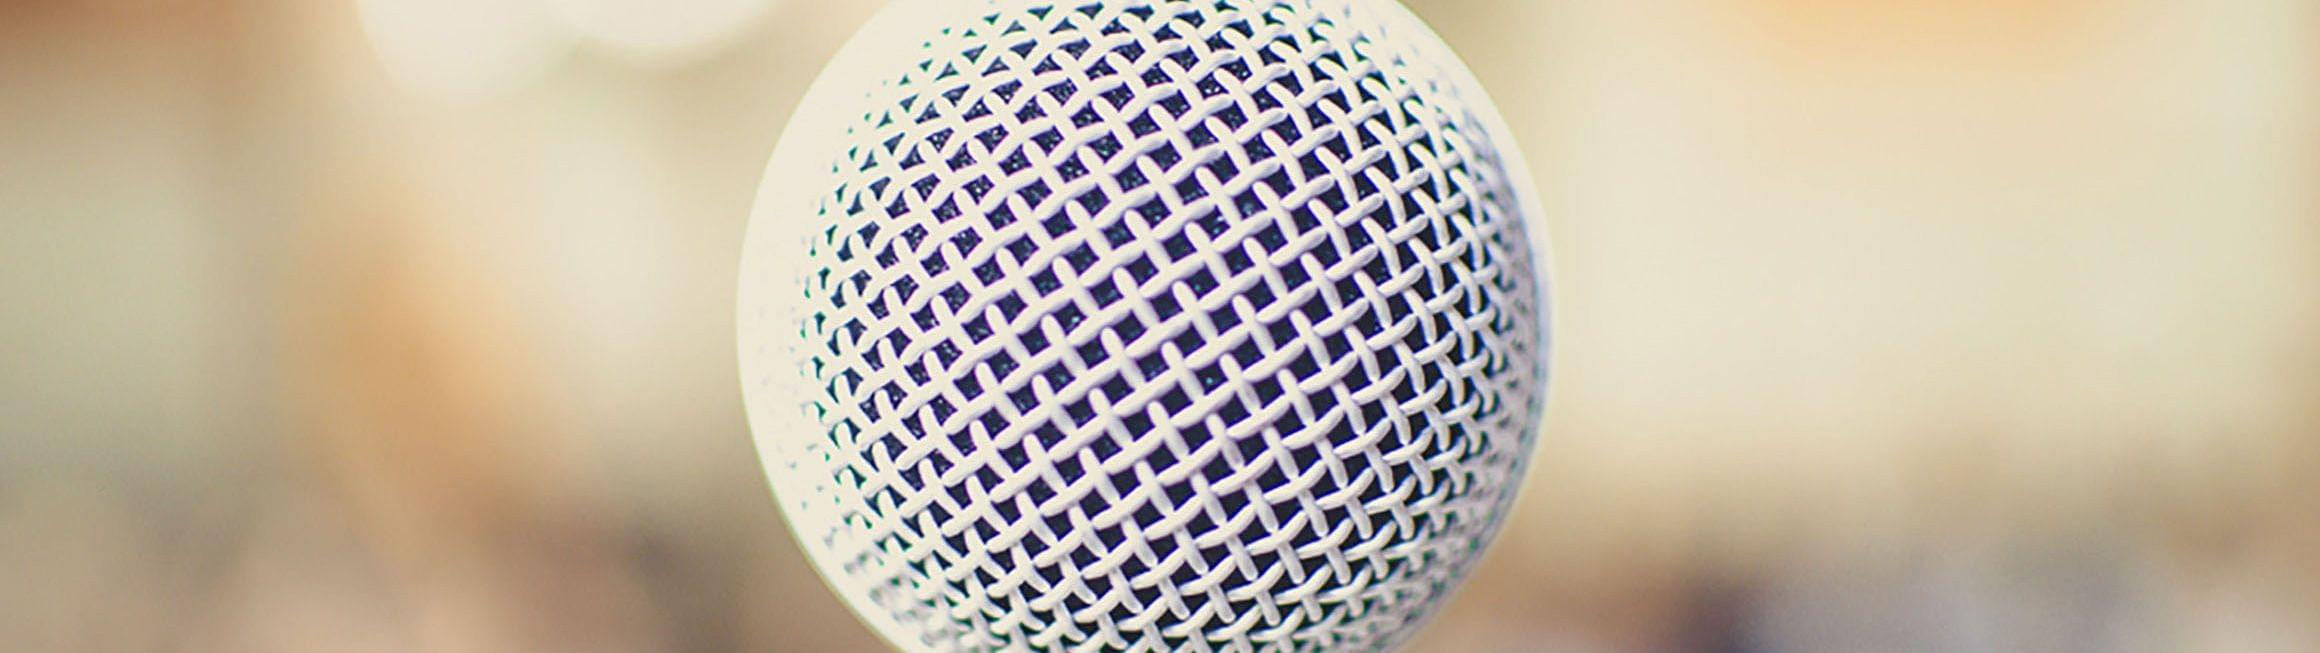 Close-up of a microphone.